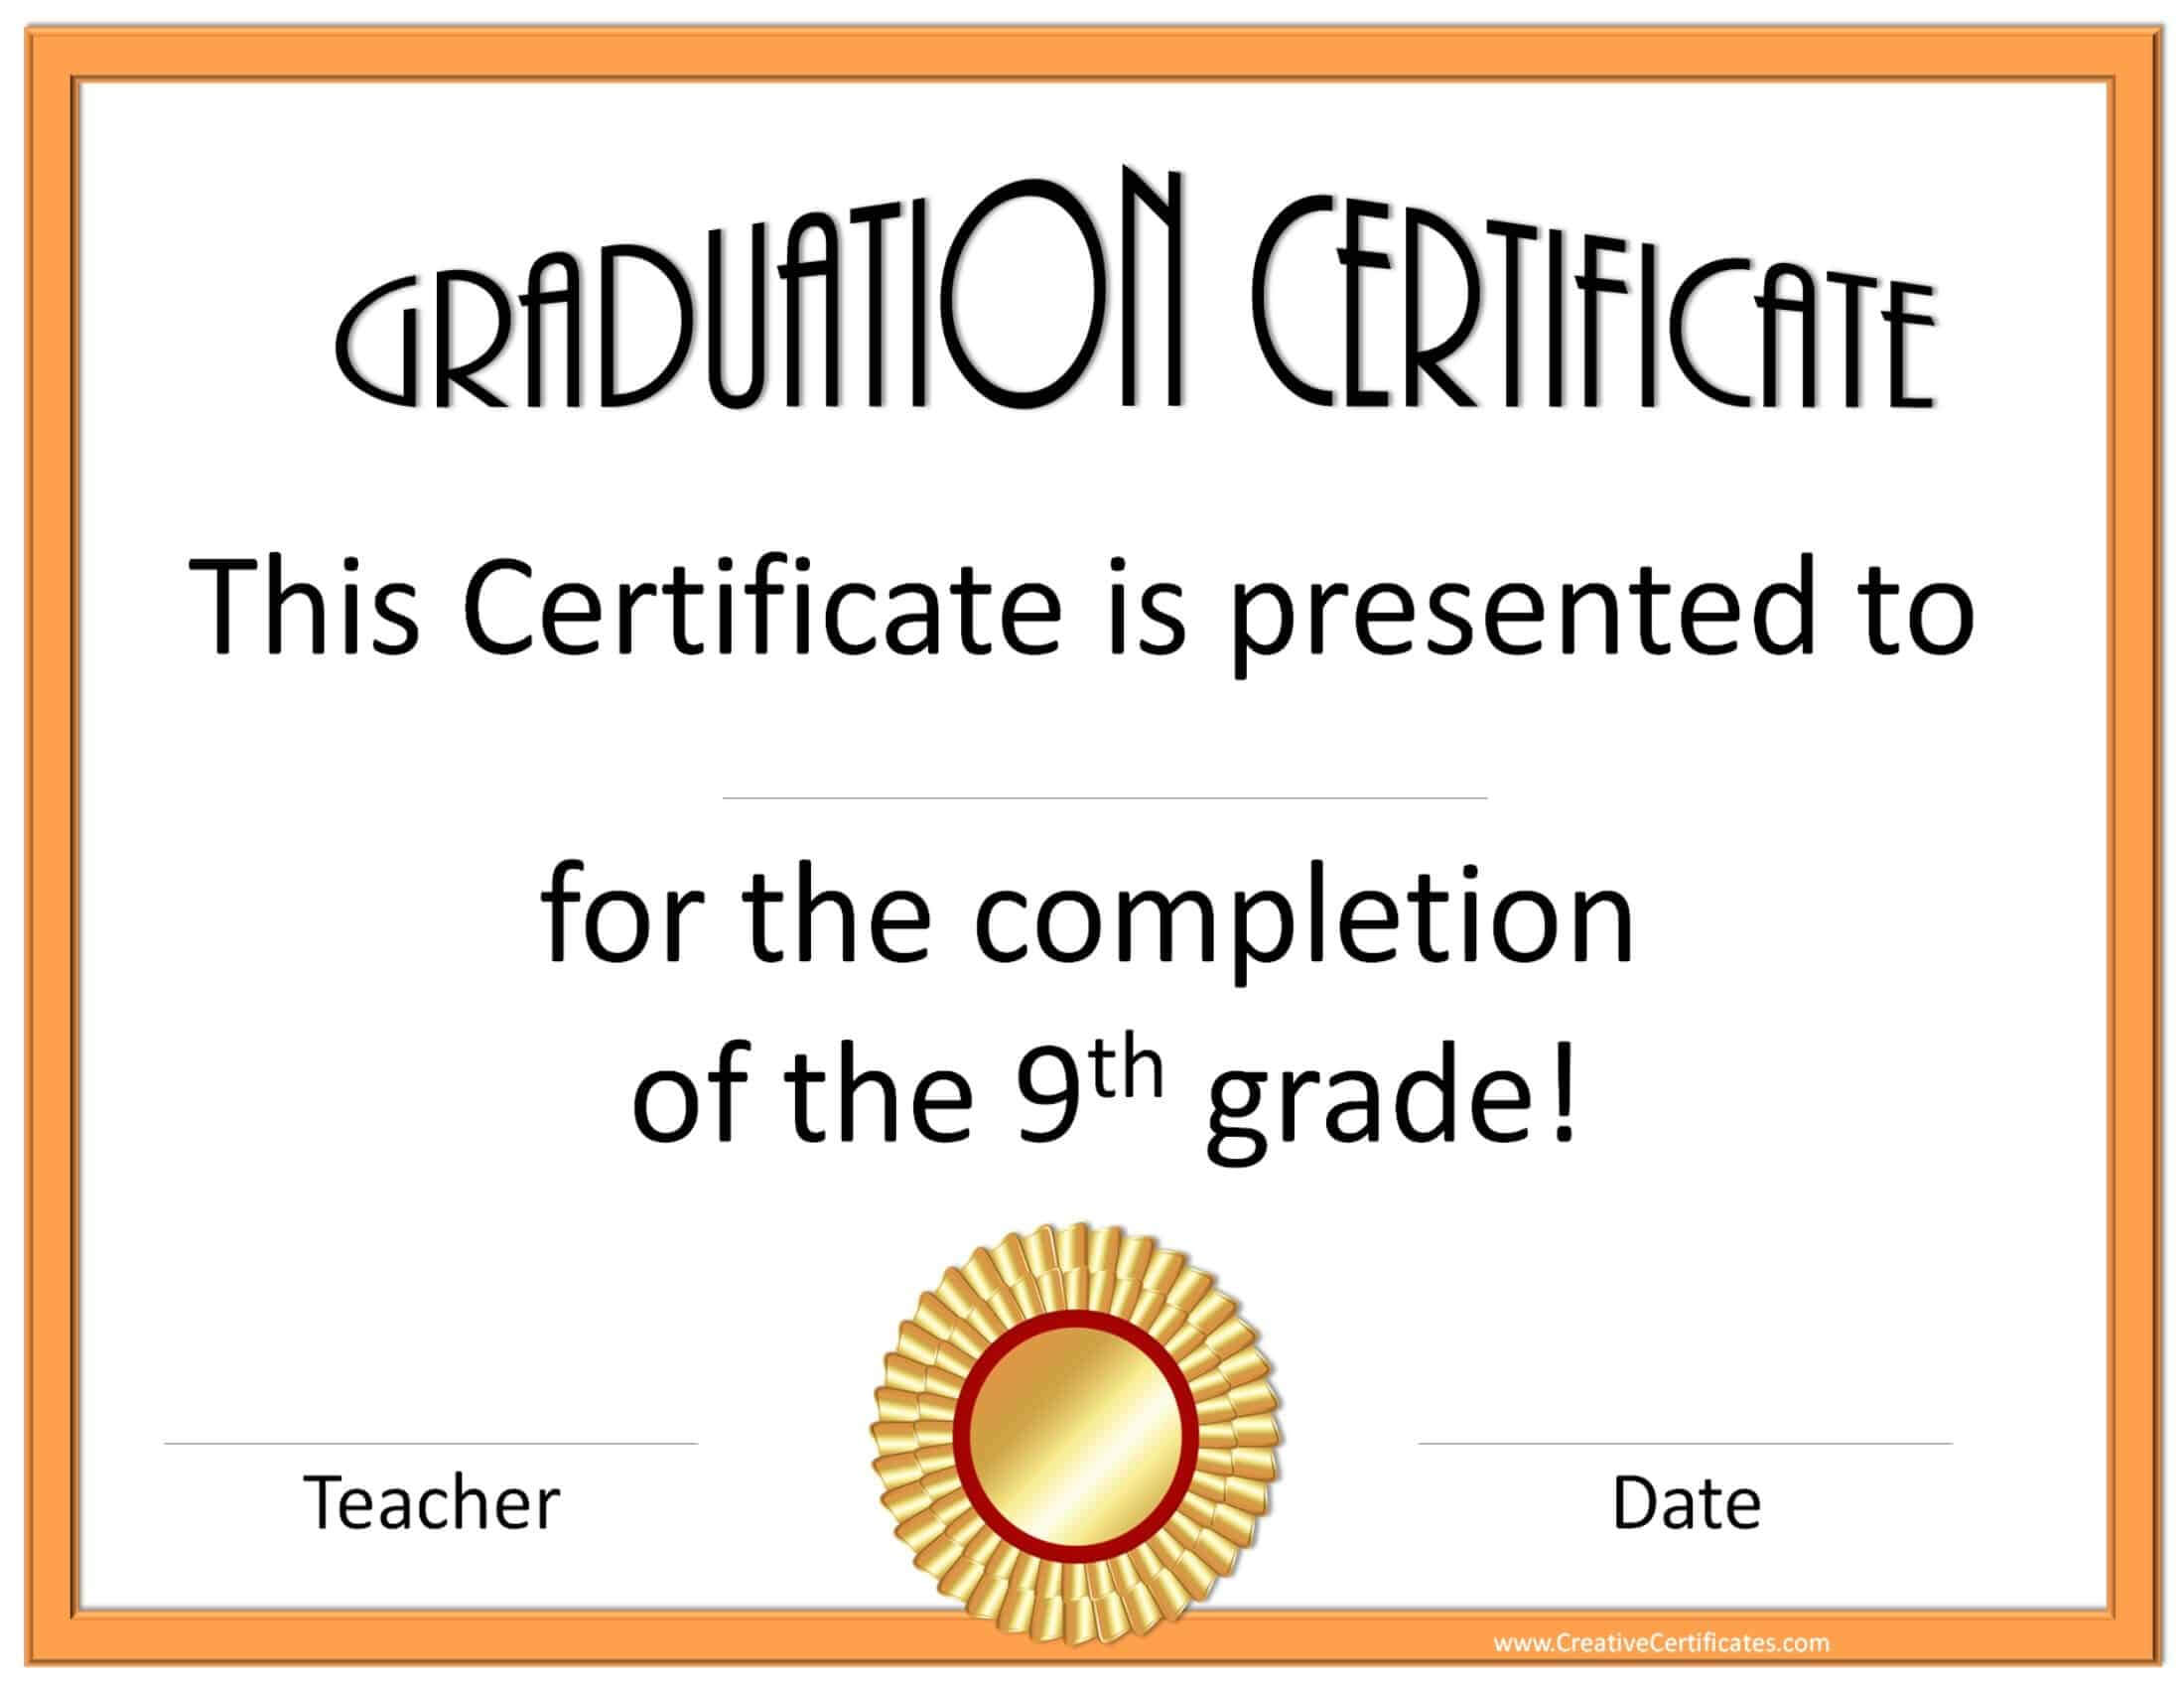 5Th Grade Graduation Certificate Template ] - Diplomas Free With 5Th Grade Graduation Certificate Template